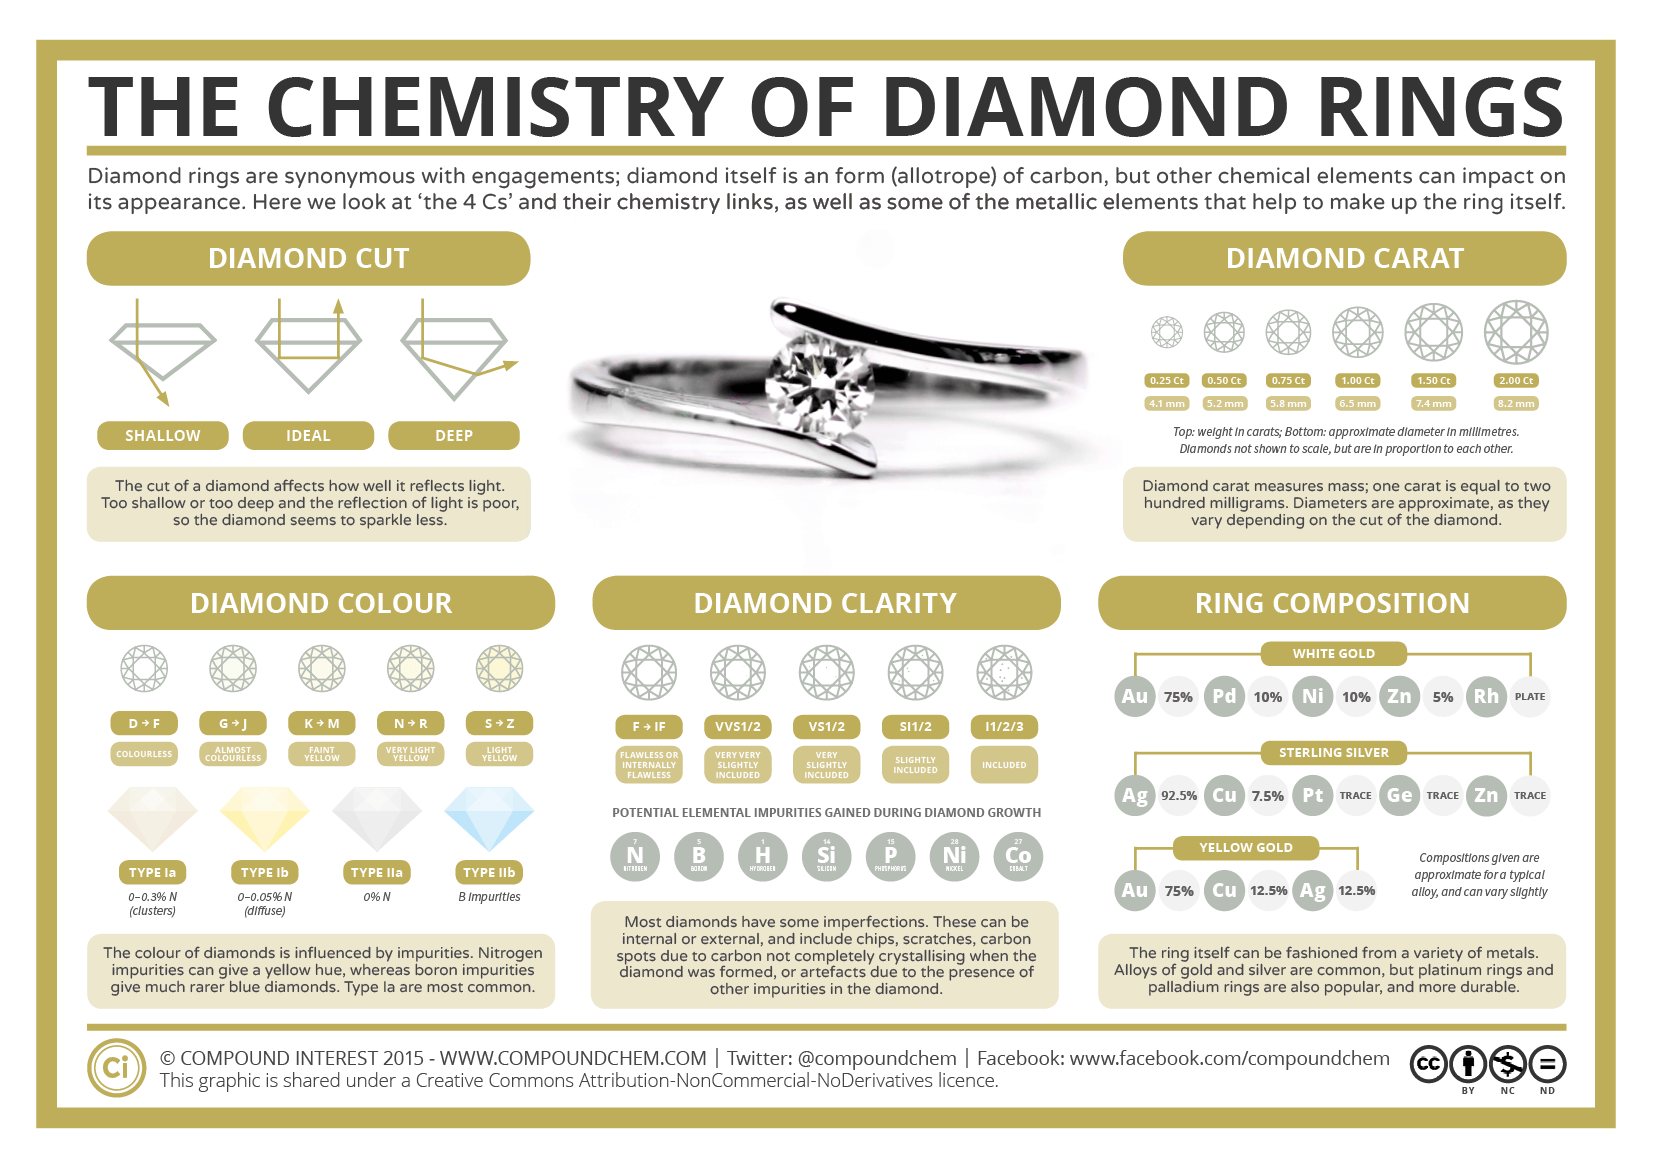 diamond classification gangue minerals separation from drawing patents patent of